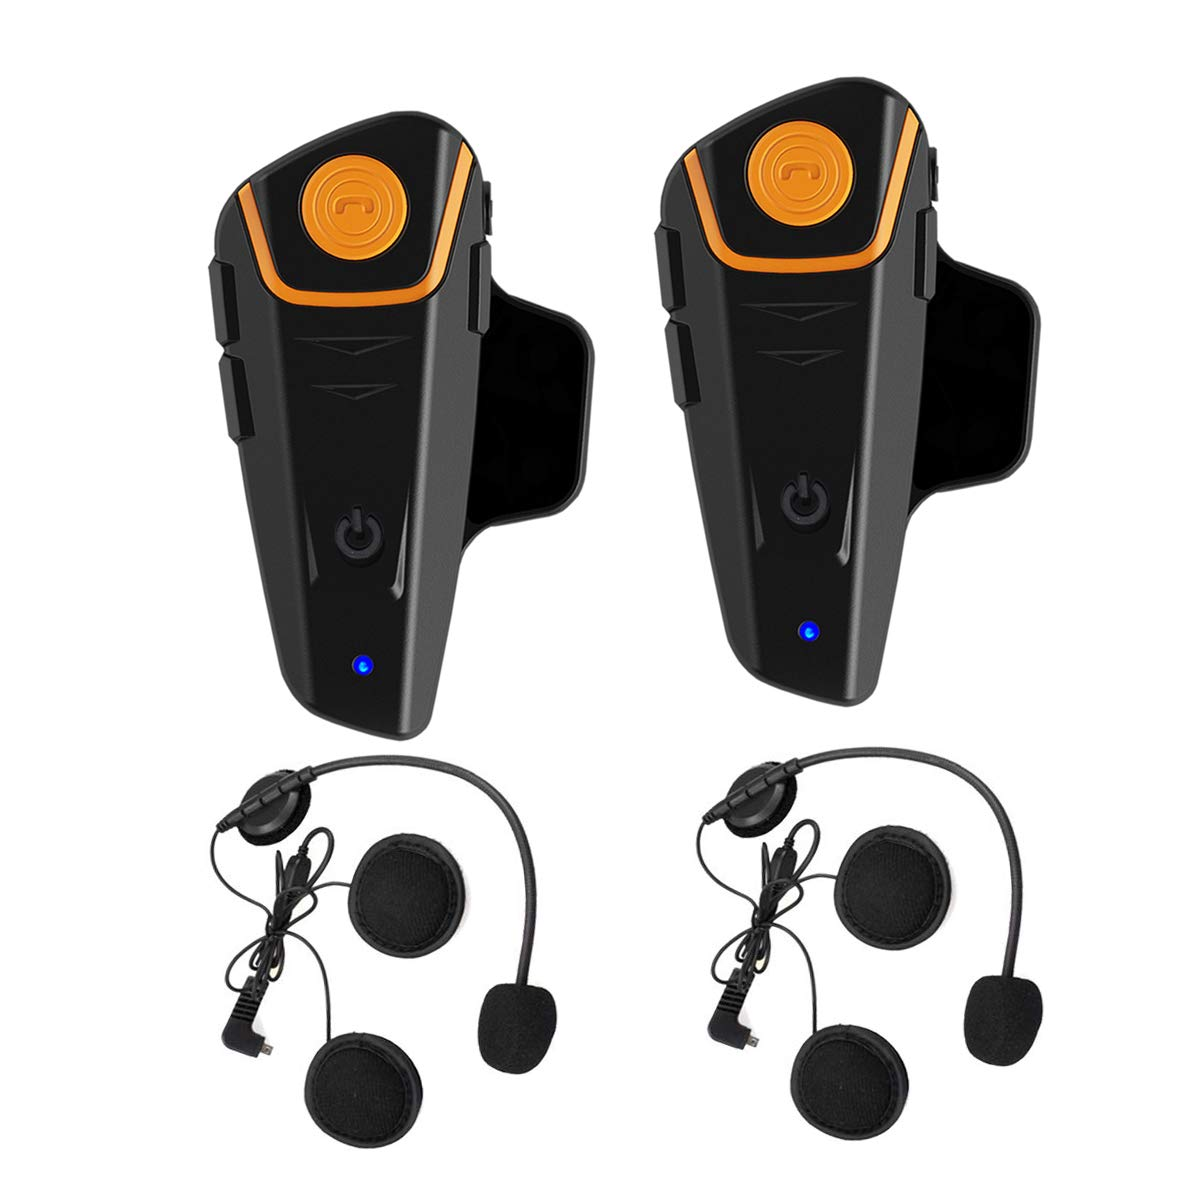 5c23dbb5e54 ... WingSport BT-S2 Motorcycle Helmet Bluetooth Headset Intercom  Communication Headset Waterproof Wireless Interphone Walkie Talkie